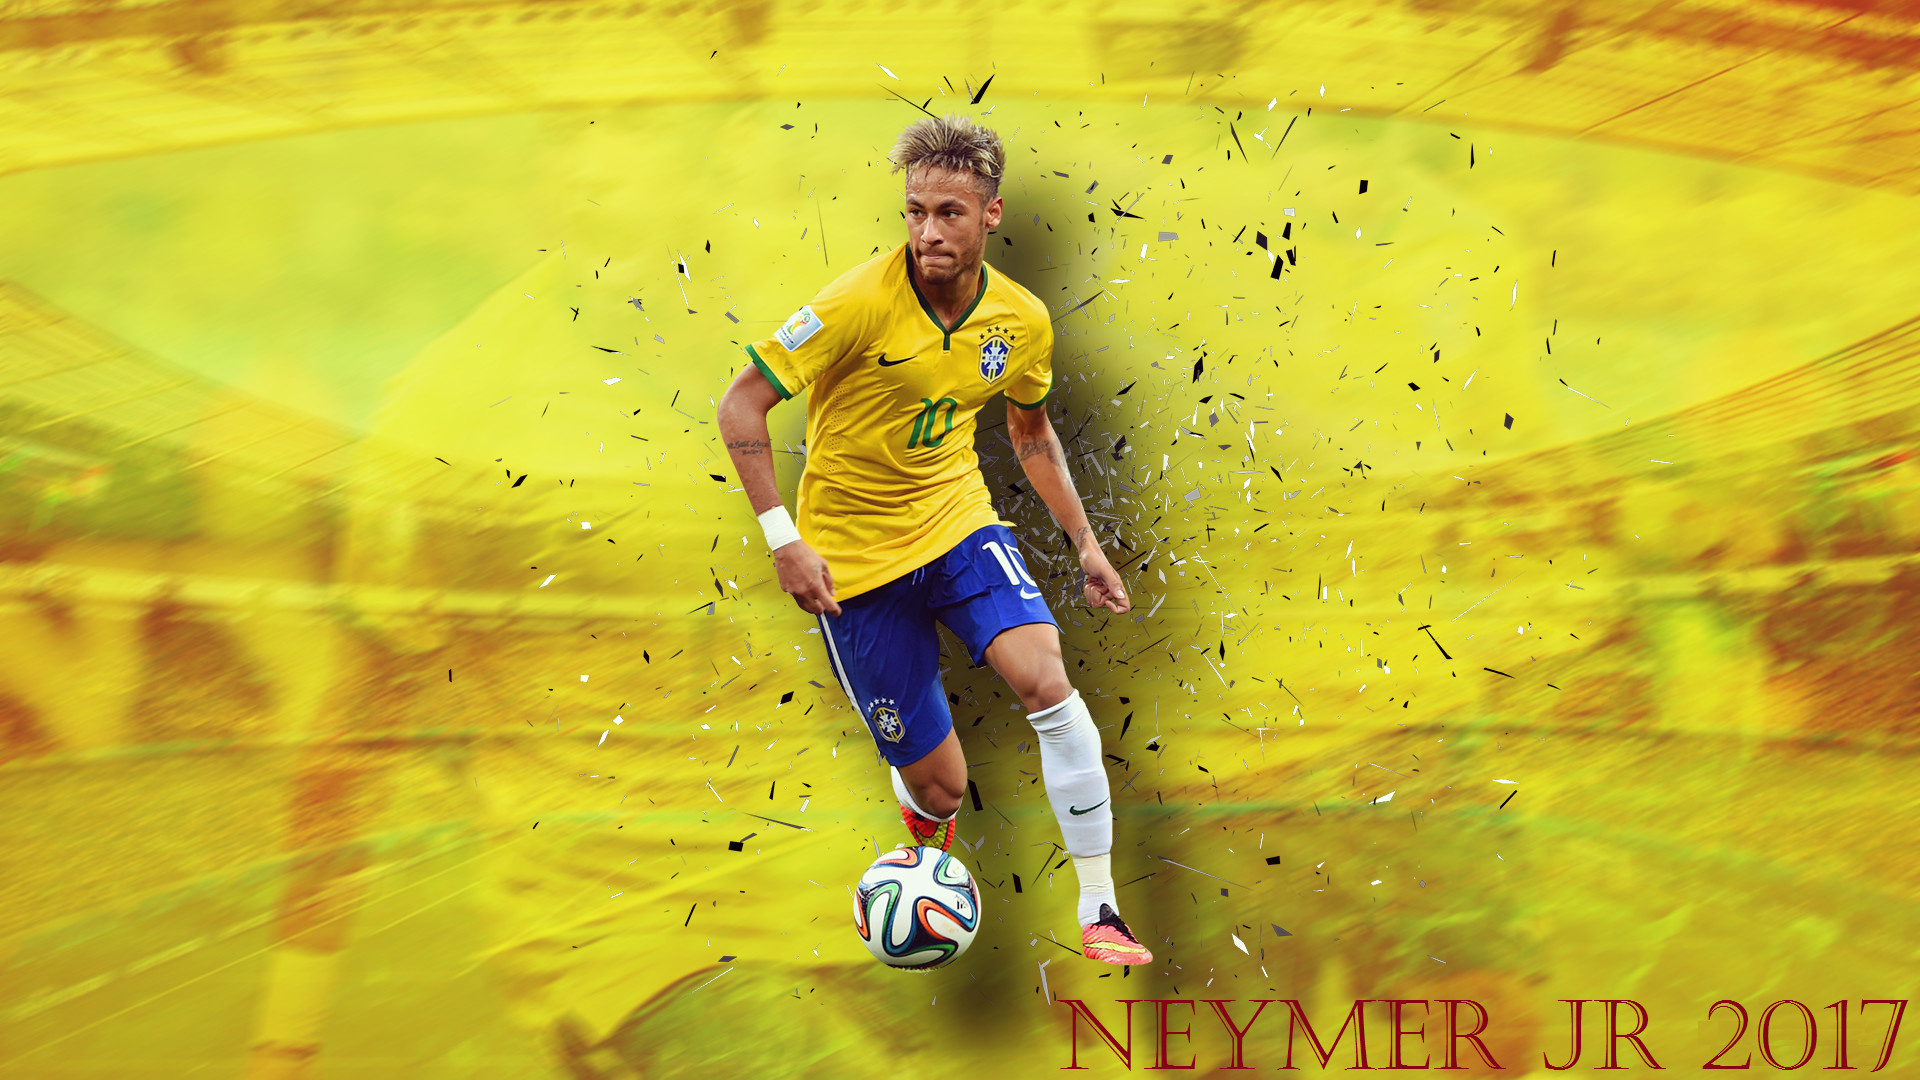 1920x1080 cute neymar football soccer player hd free play with ball mobile bakground desktop  pics